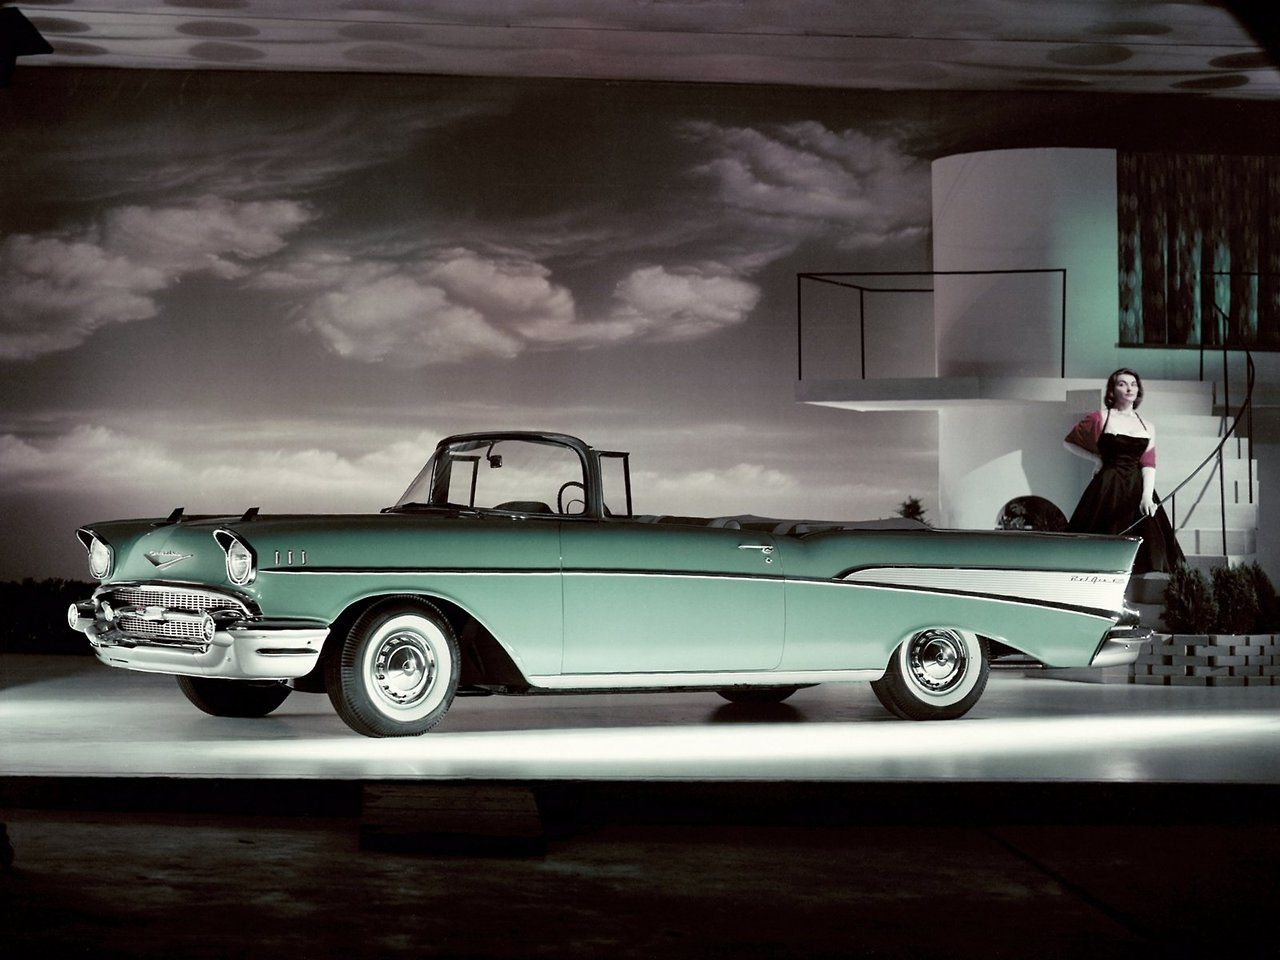 1957 Chevrolet Bel Air Cabriolet Cars,Trucks,Motorcycles